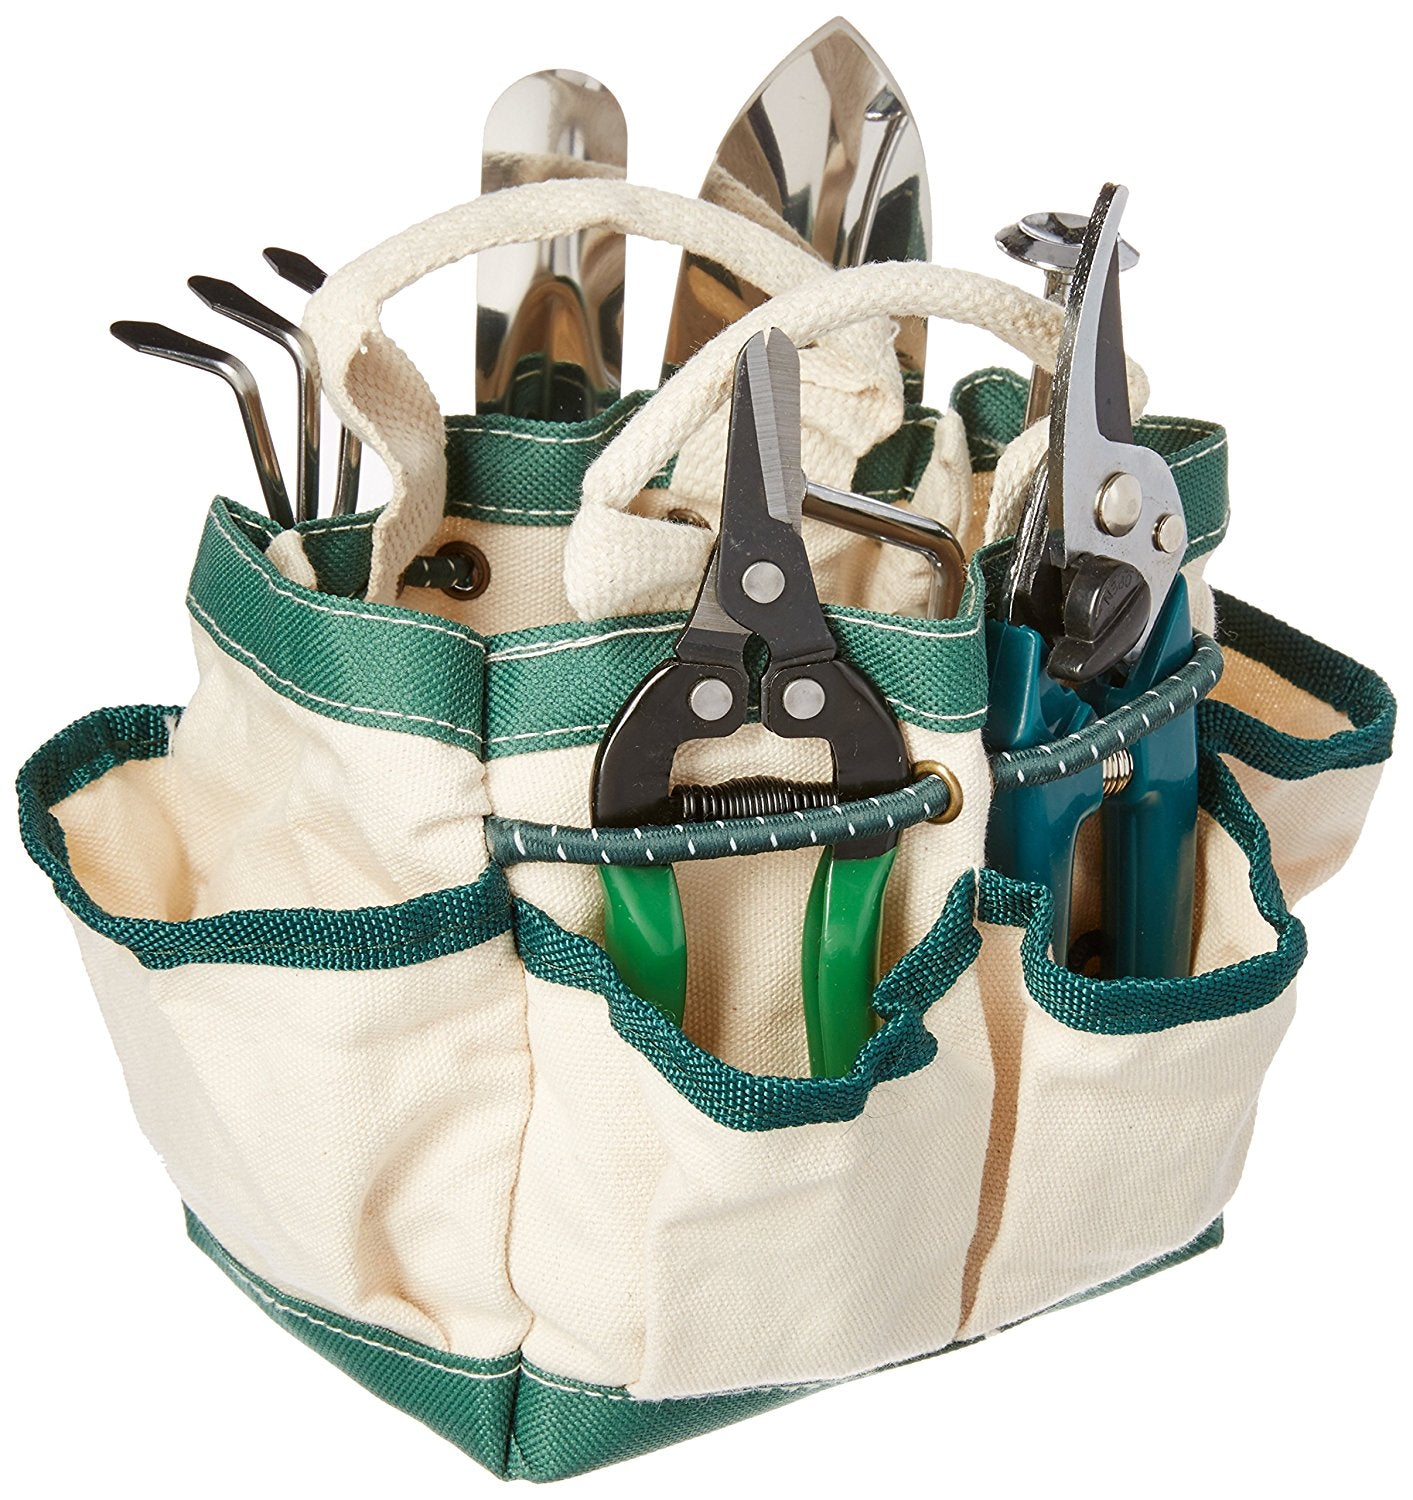 Indoor Gardening Tool Set